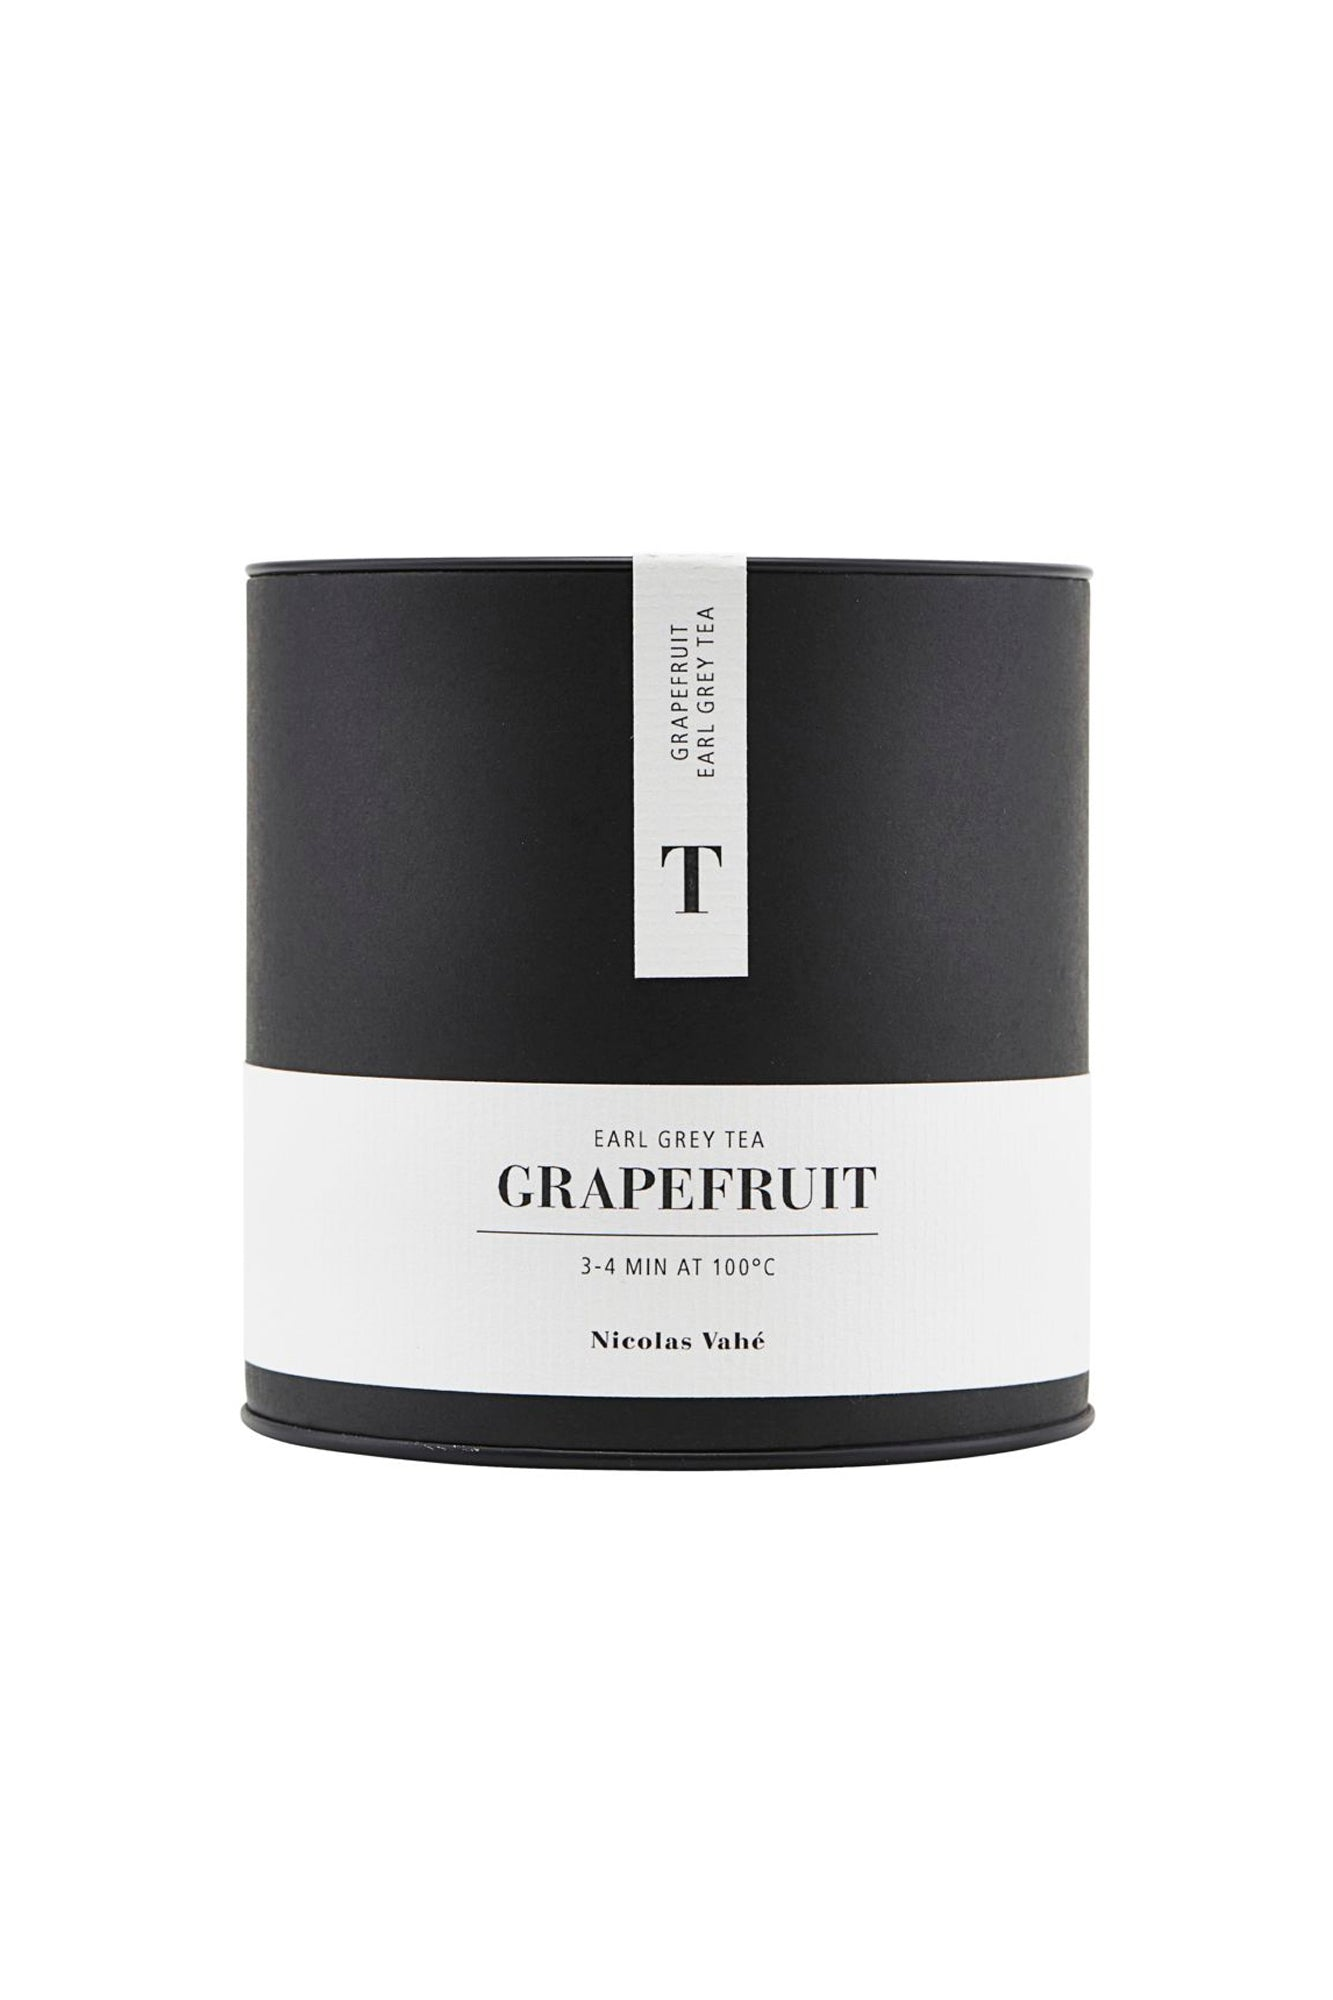 Grapefruit Earl Grey Tea